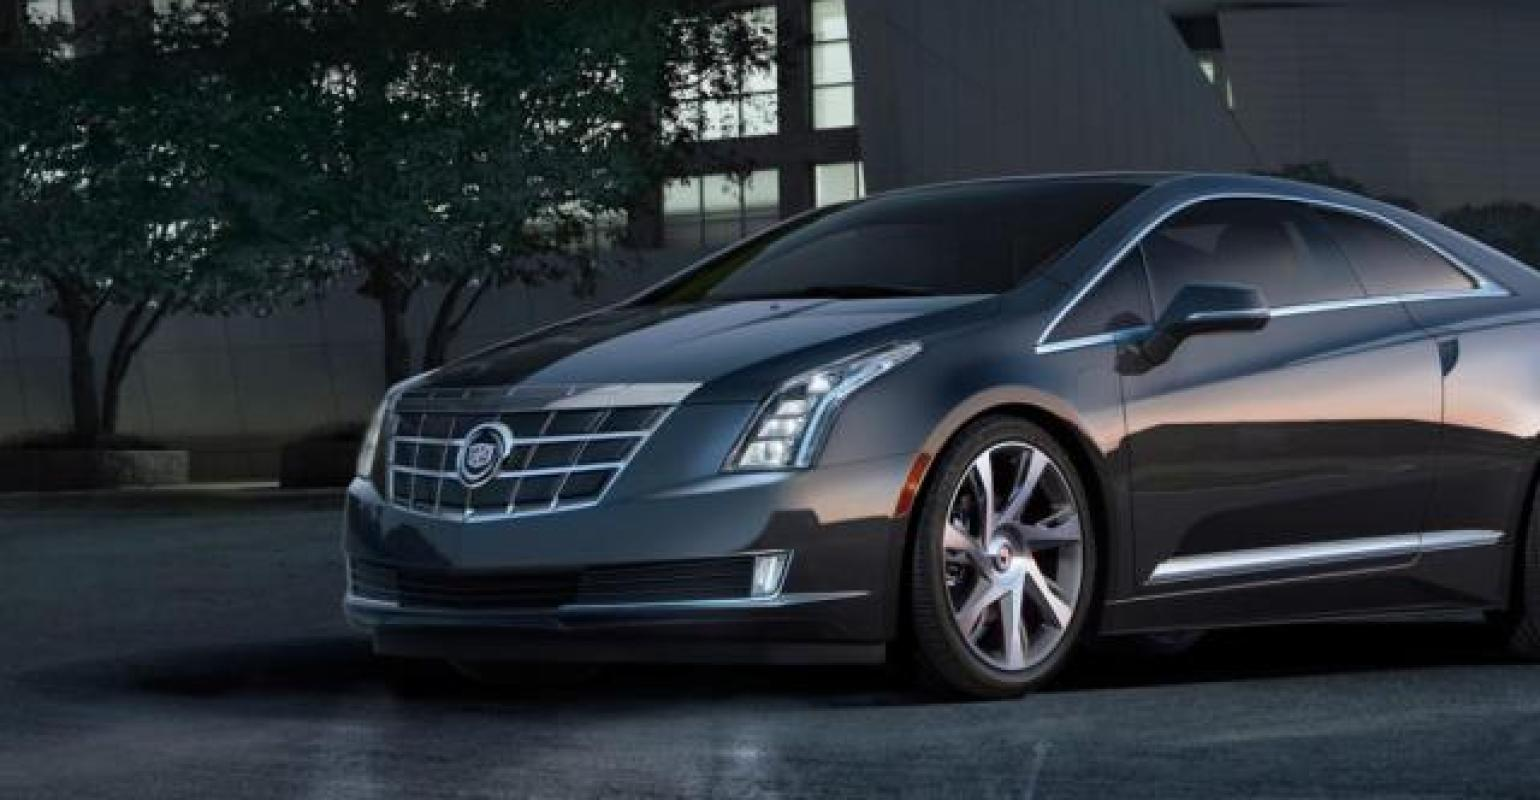 Gm Prices Cadillac Elr Electric Vehicle At 75 995 Commercial